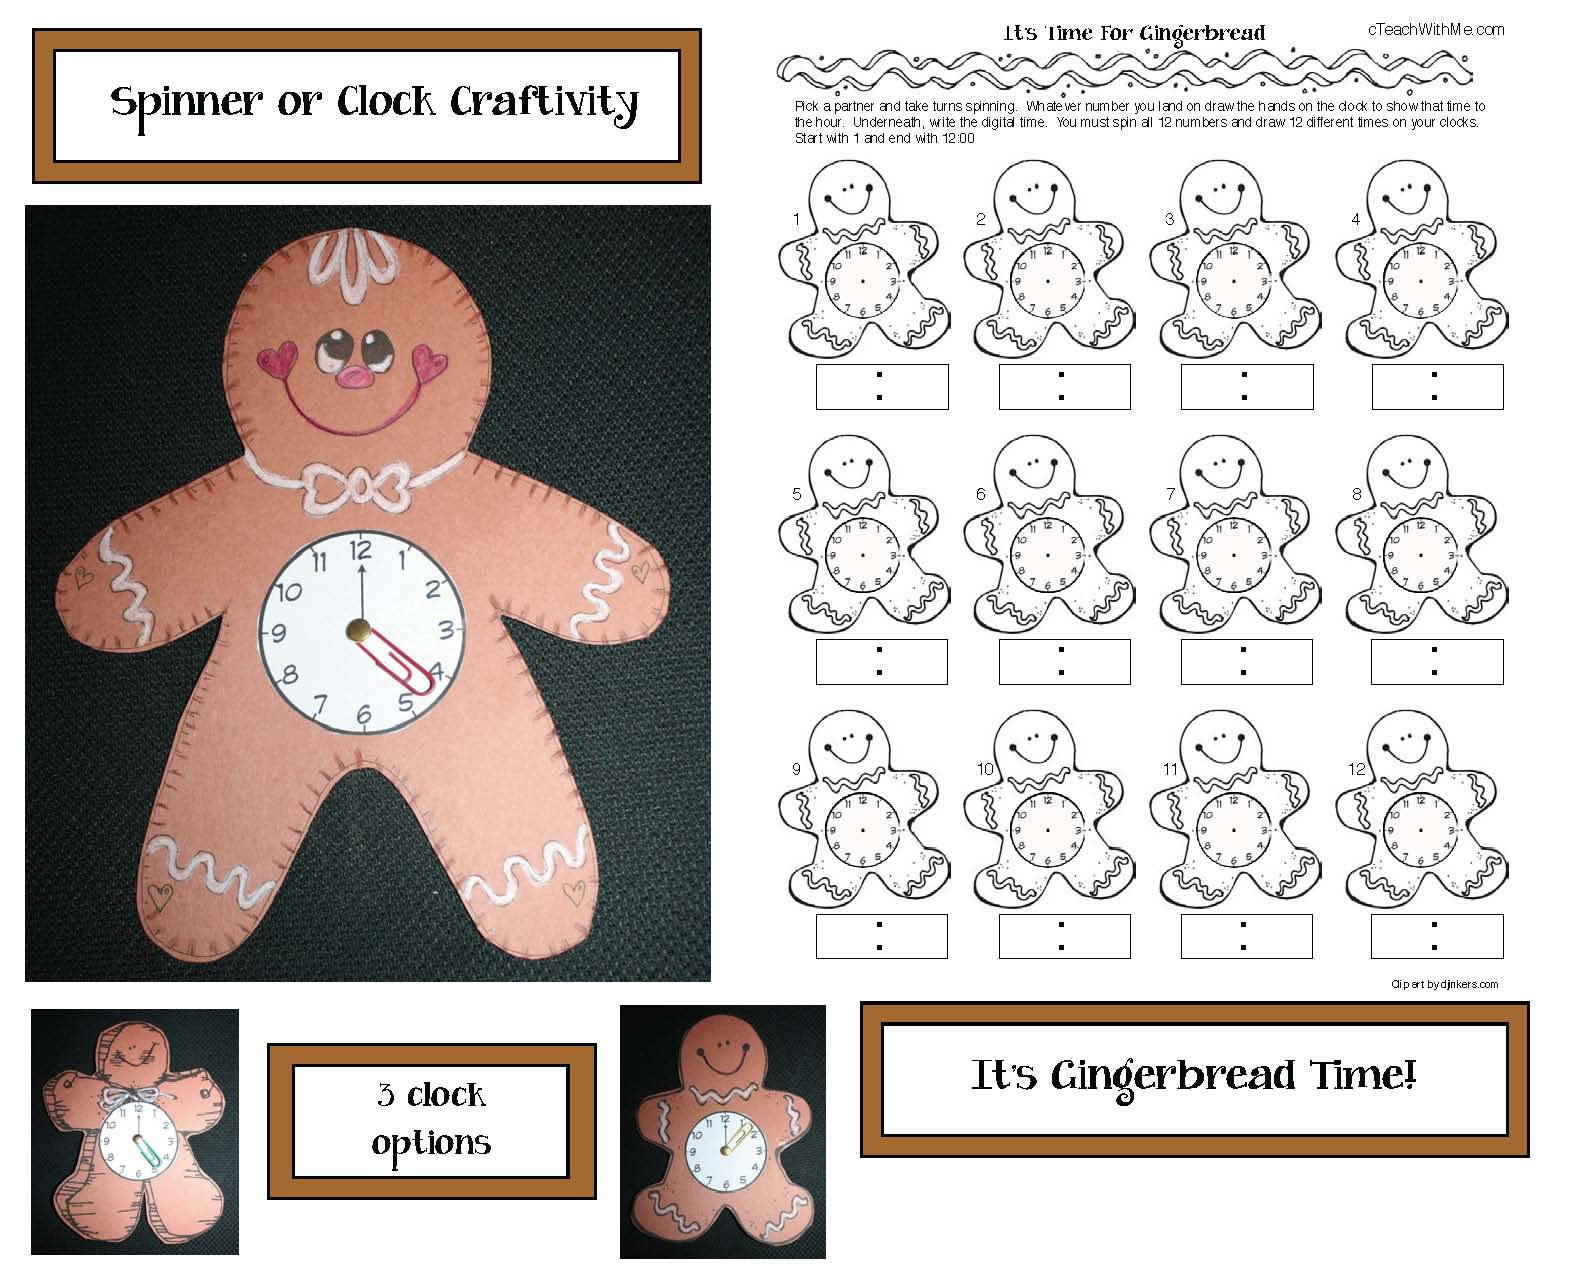 spatial direction activities, gingerbread activities, place value mats, place value activities, gingerbread house activities, shape activities, common core gingerbread, gingerbread games, telling time to the hour activities, digital and analog time activities,